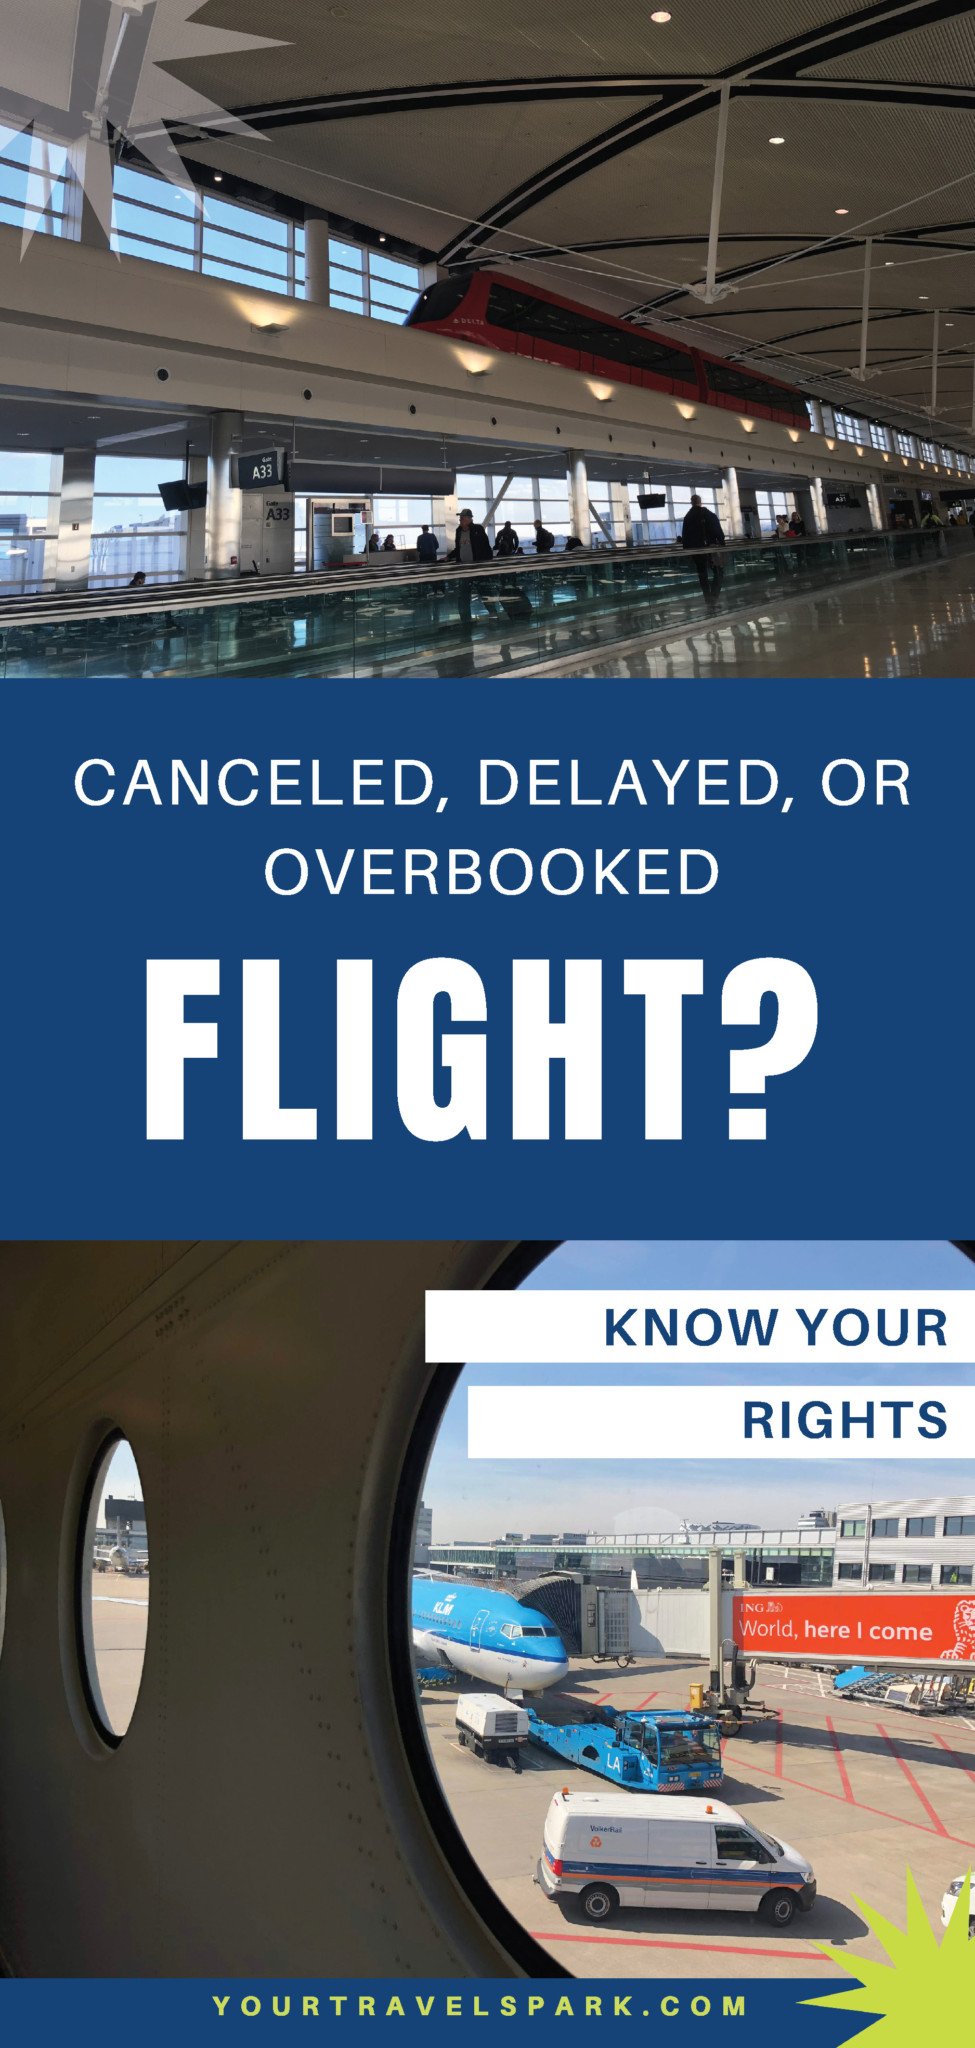 Have you had a canceled flight, overbooked flight, or delayed flight? Know your rights when it's not your fault. #canceledflight #delayedflight #overbookedflight #airlinerules #airlinerights #travel #delayedtravel